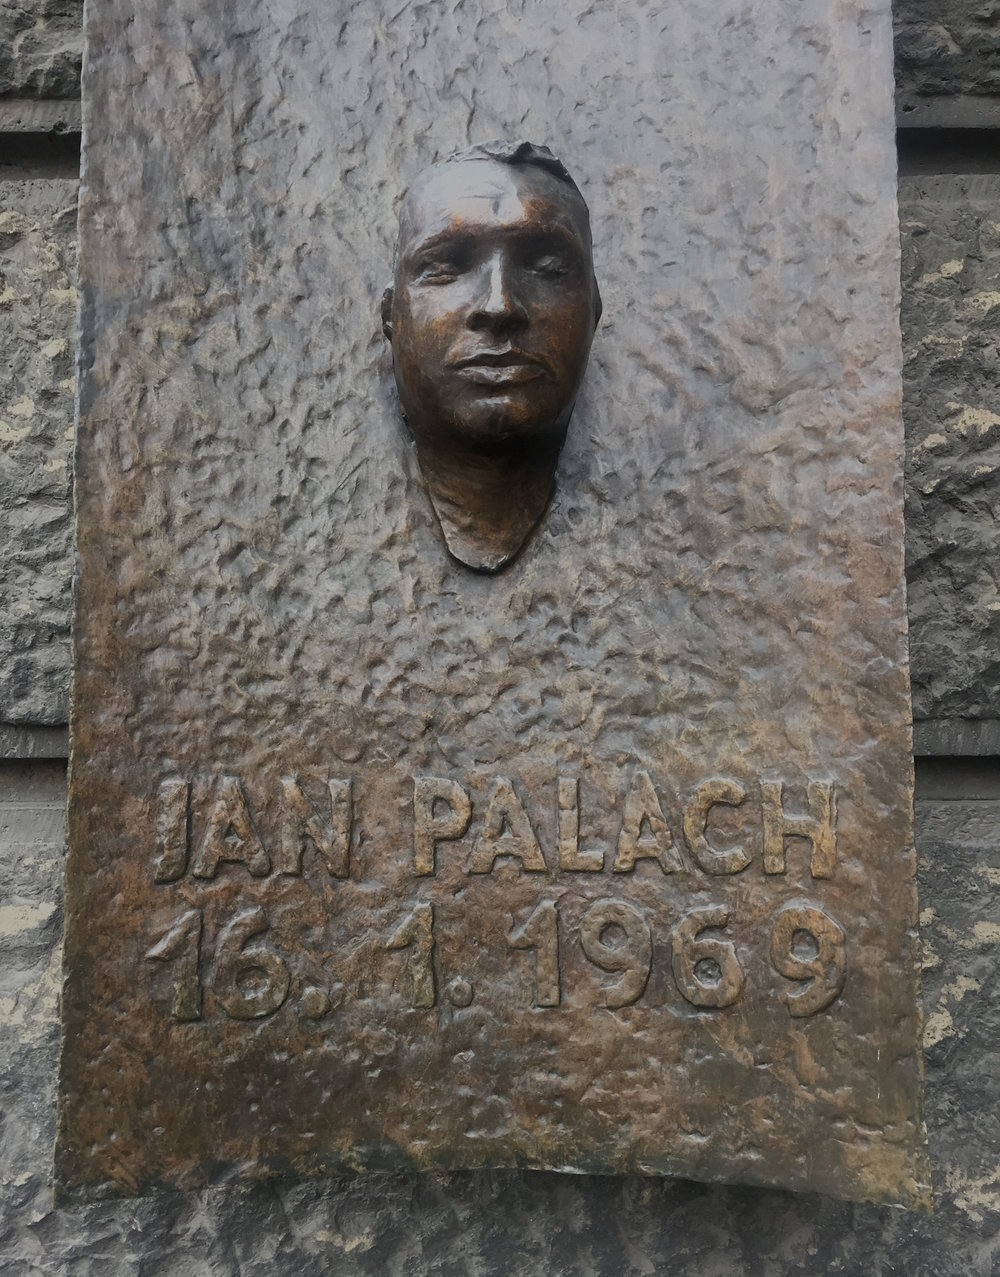 Jan Palach's death mask taken by Olbram Zoubek